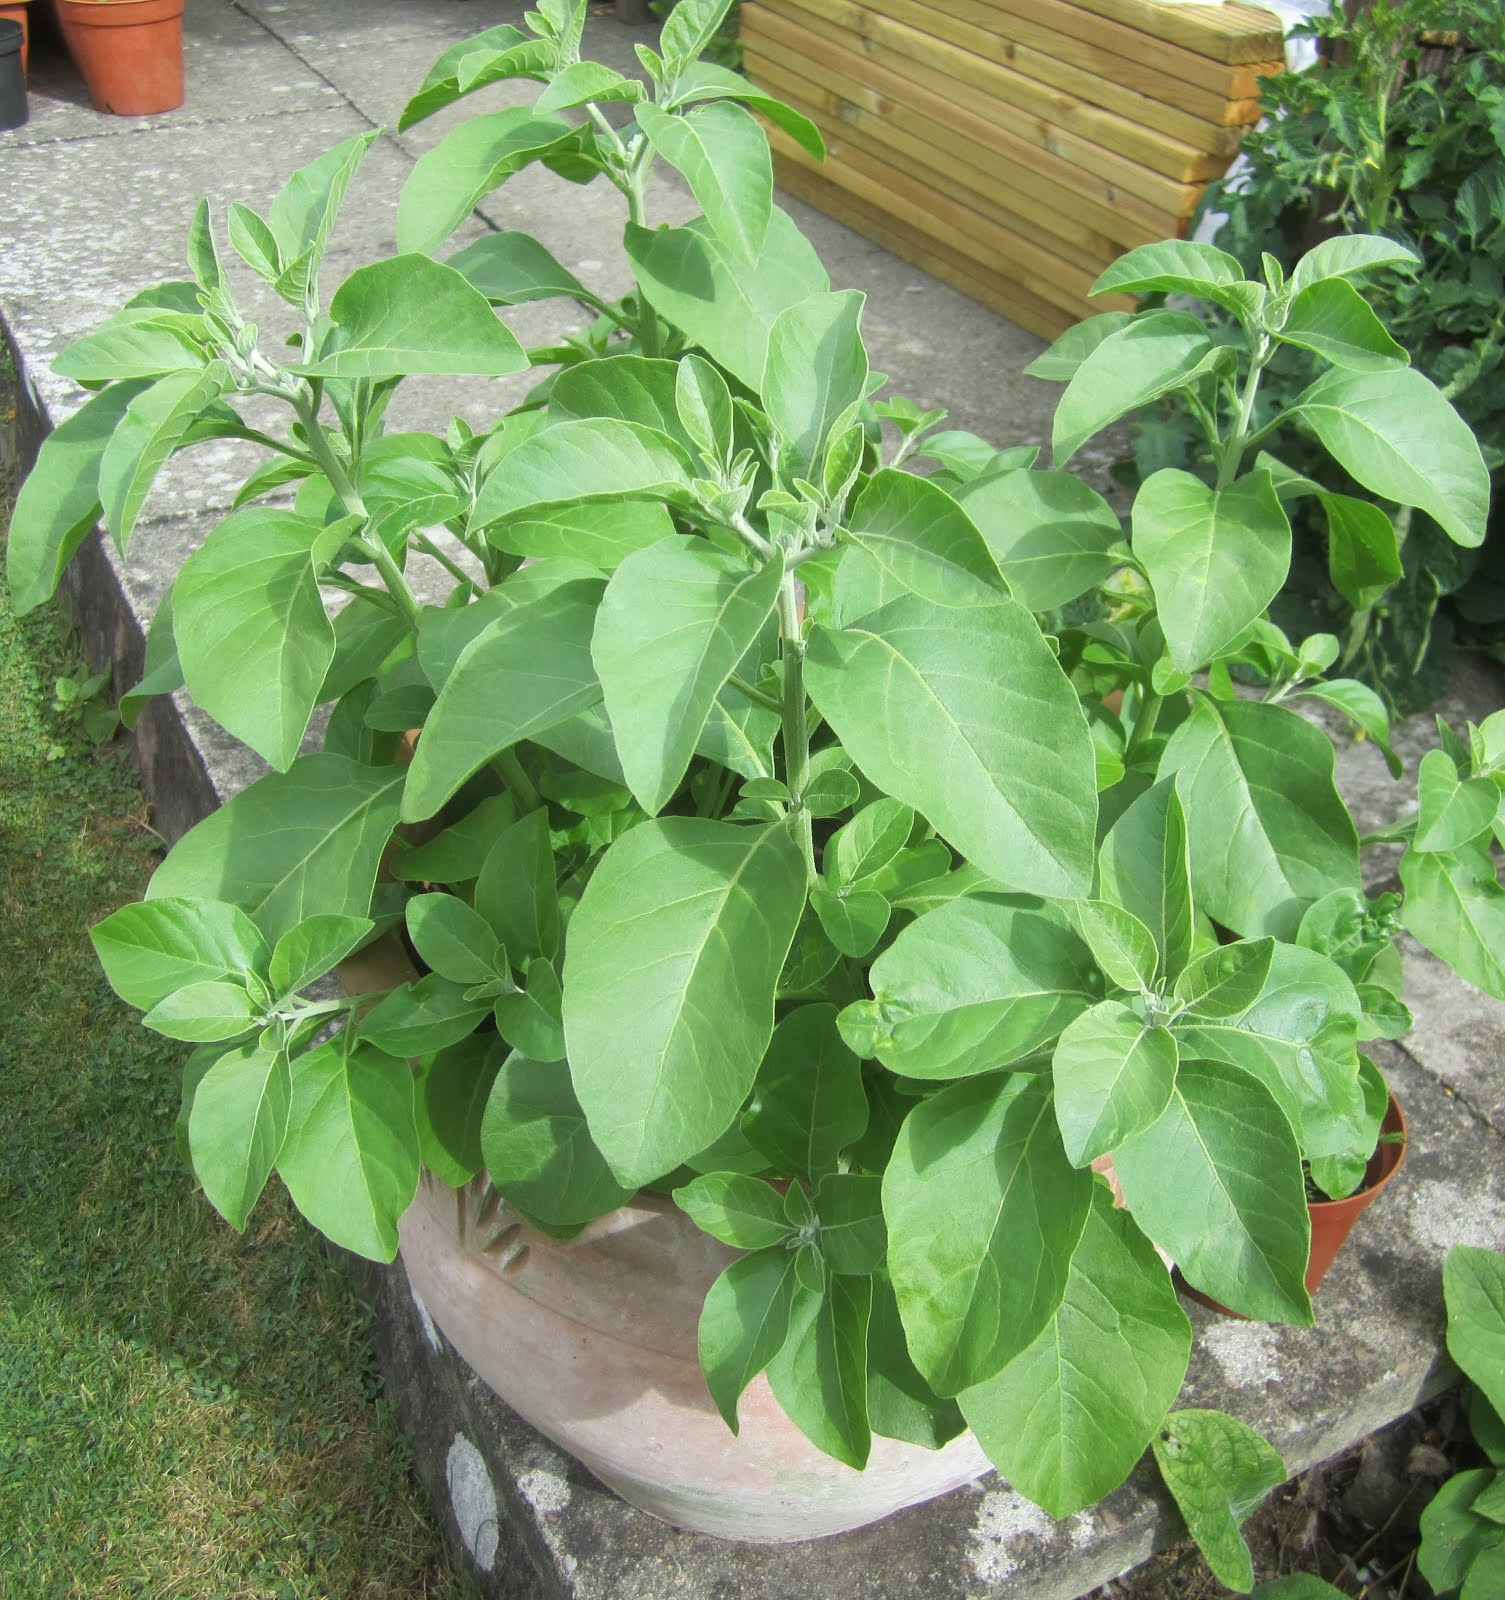 Ashwagandha pot plants